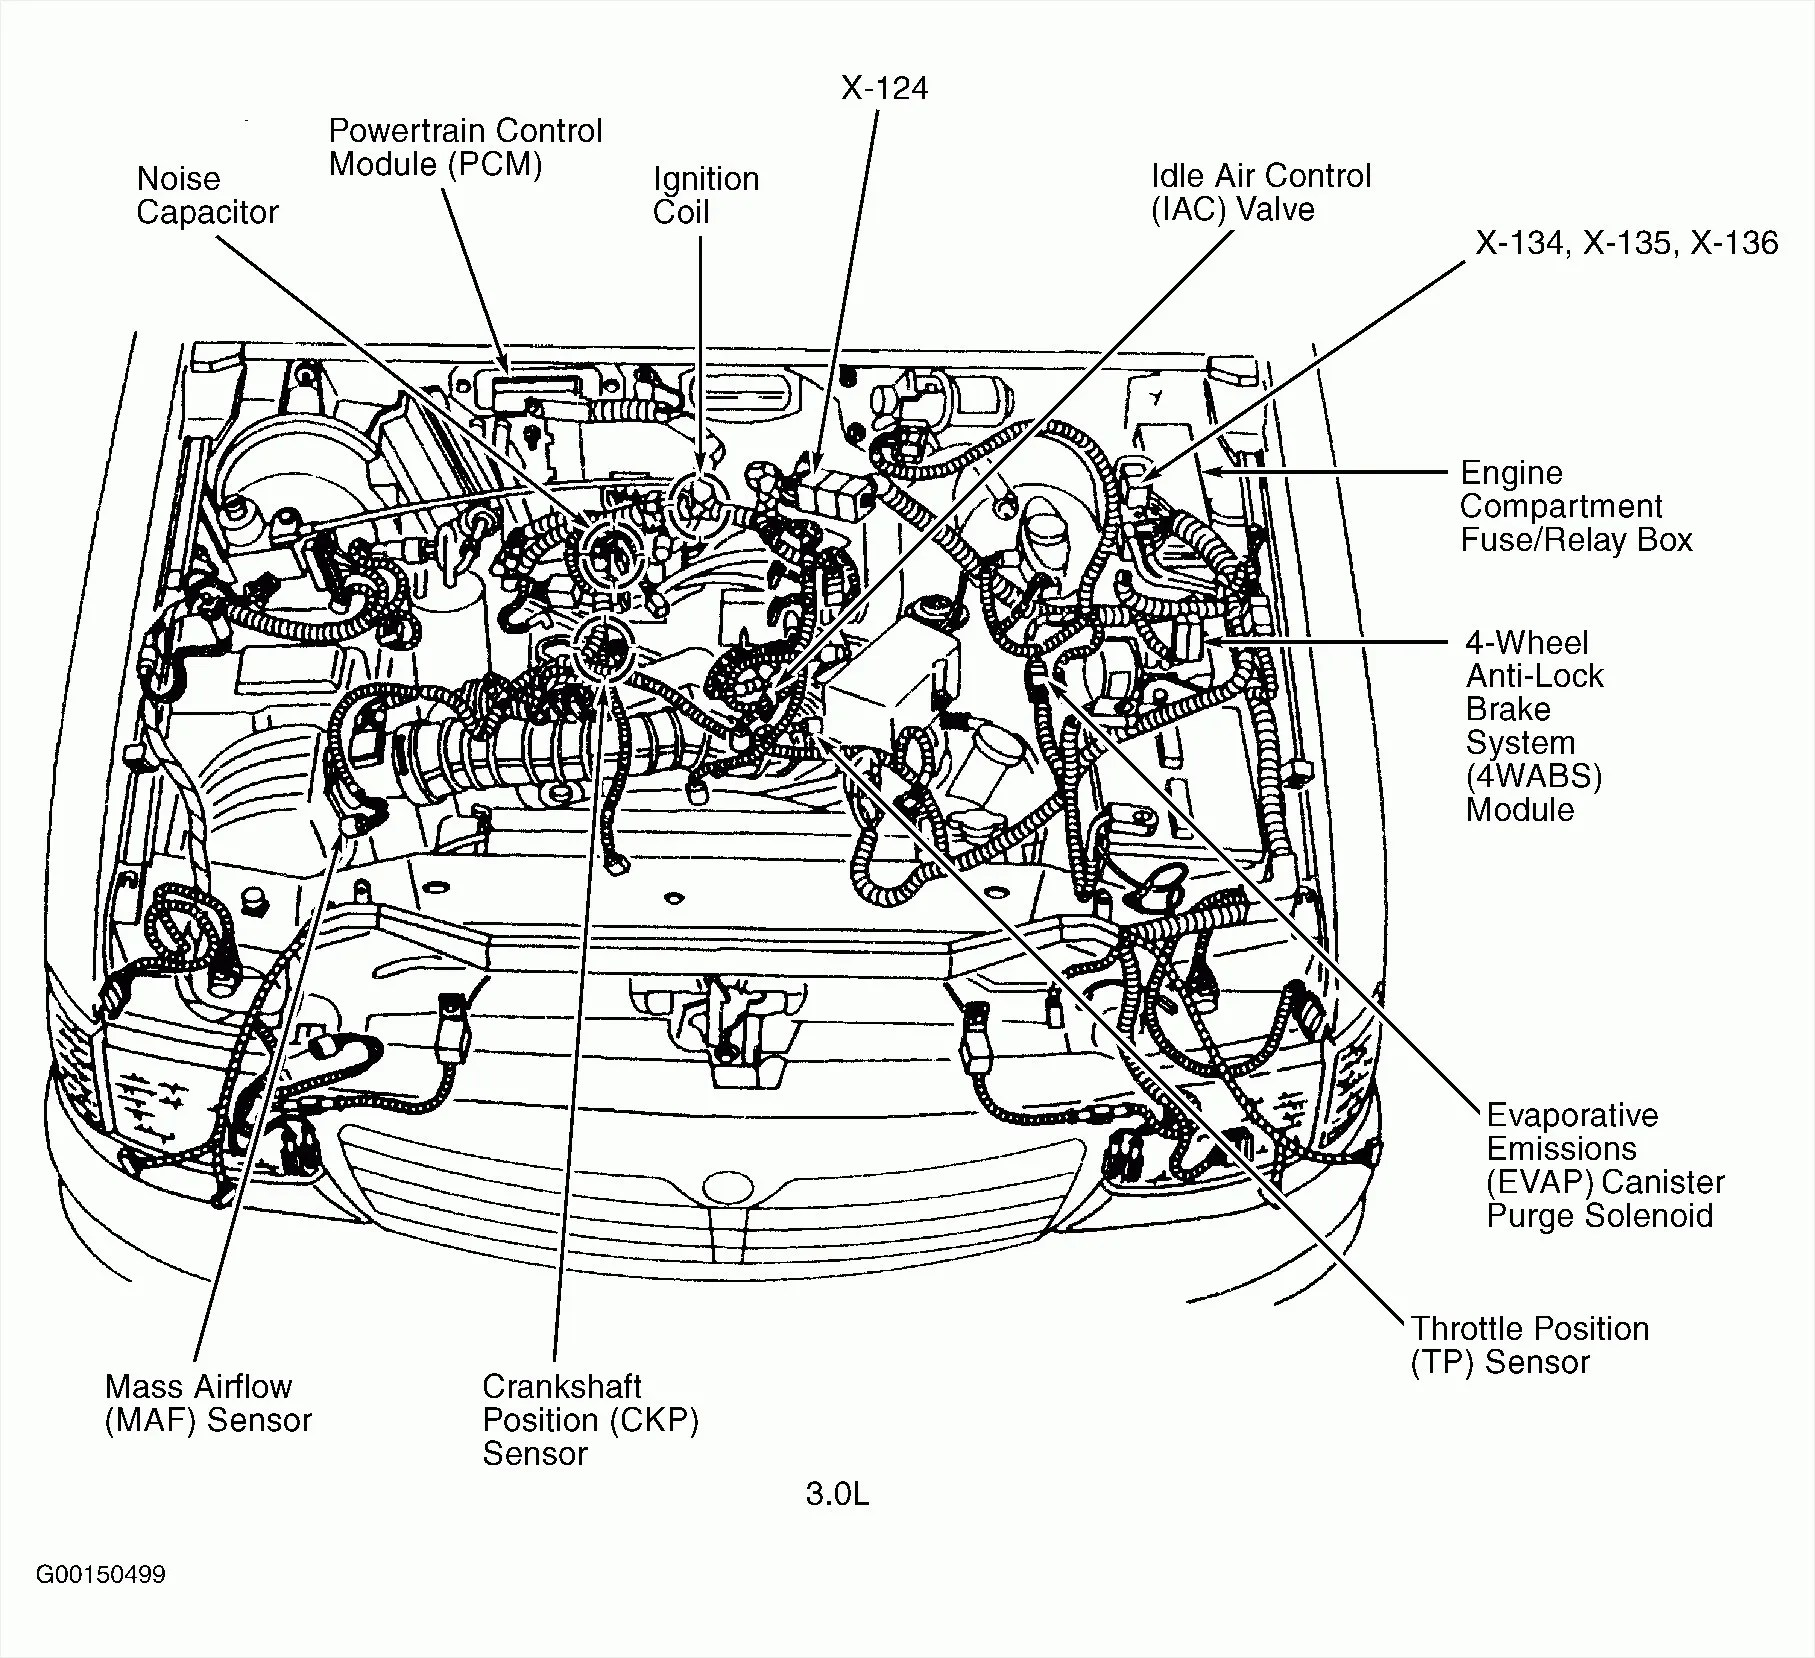 hight resolution of dodge grand caravan engine diagram wiring diagram featured 2007 dodge grand caravan engine diagram dodge caravan engine diagram